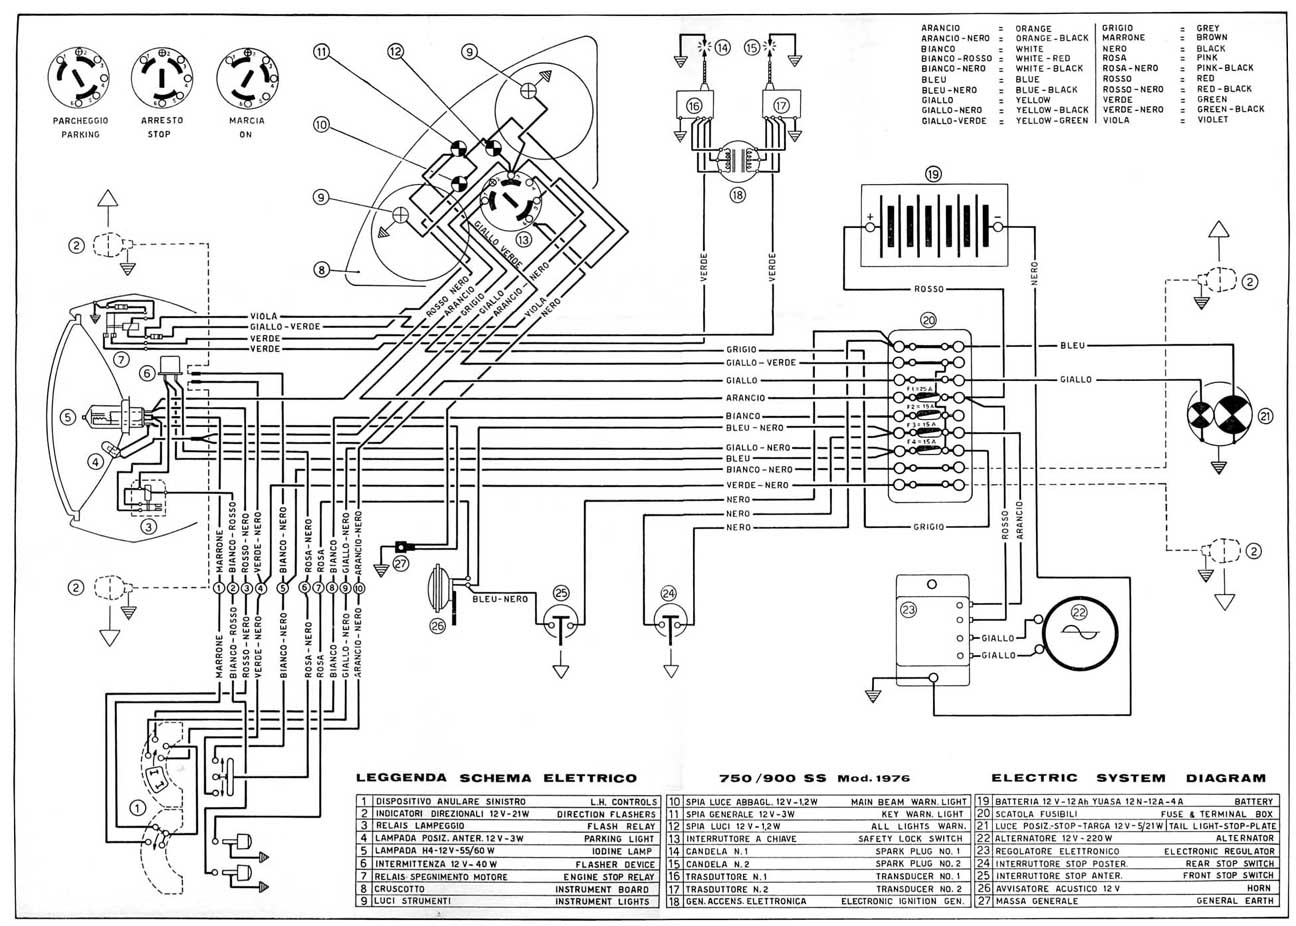 hight resolution of ducati 860 gt wiring diagram wiring diagramducati 860 gt wiring diagram